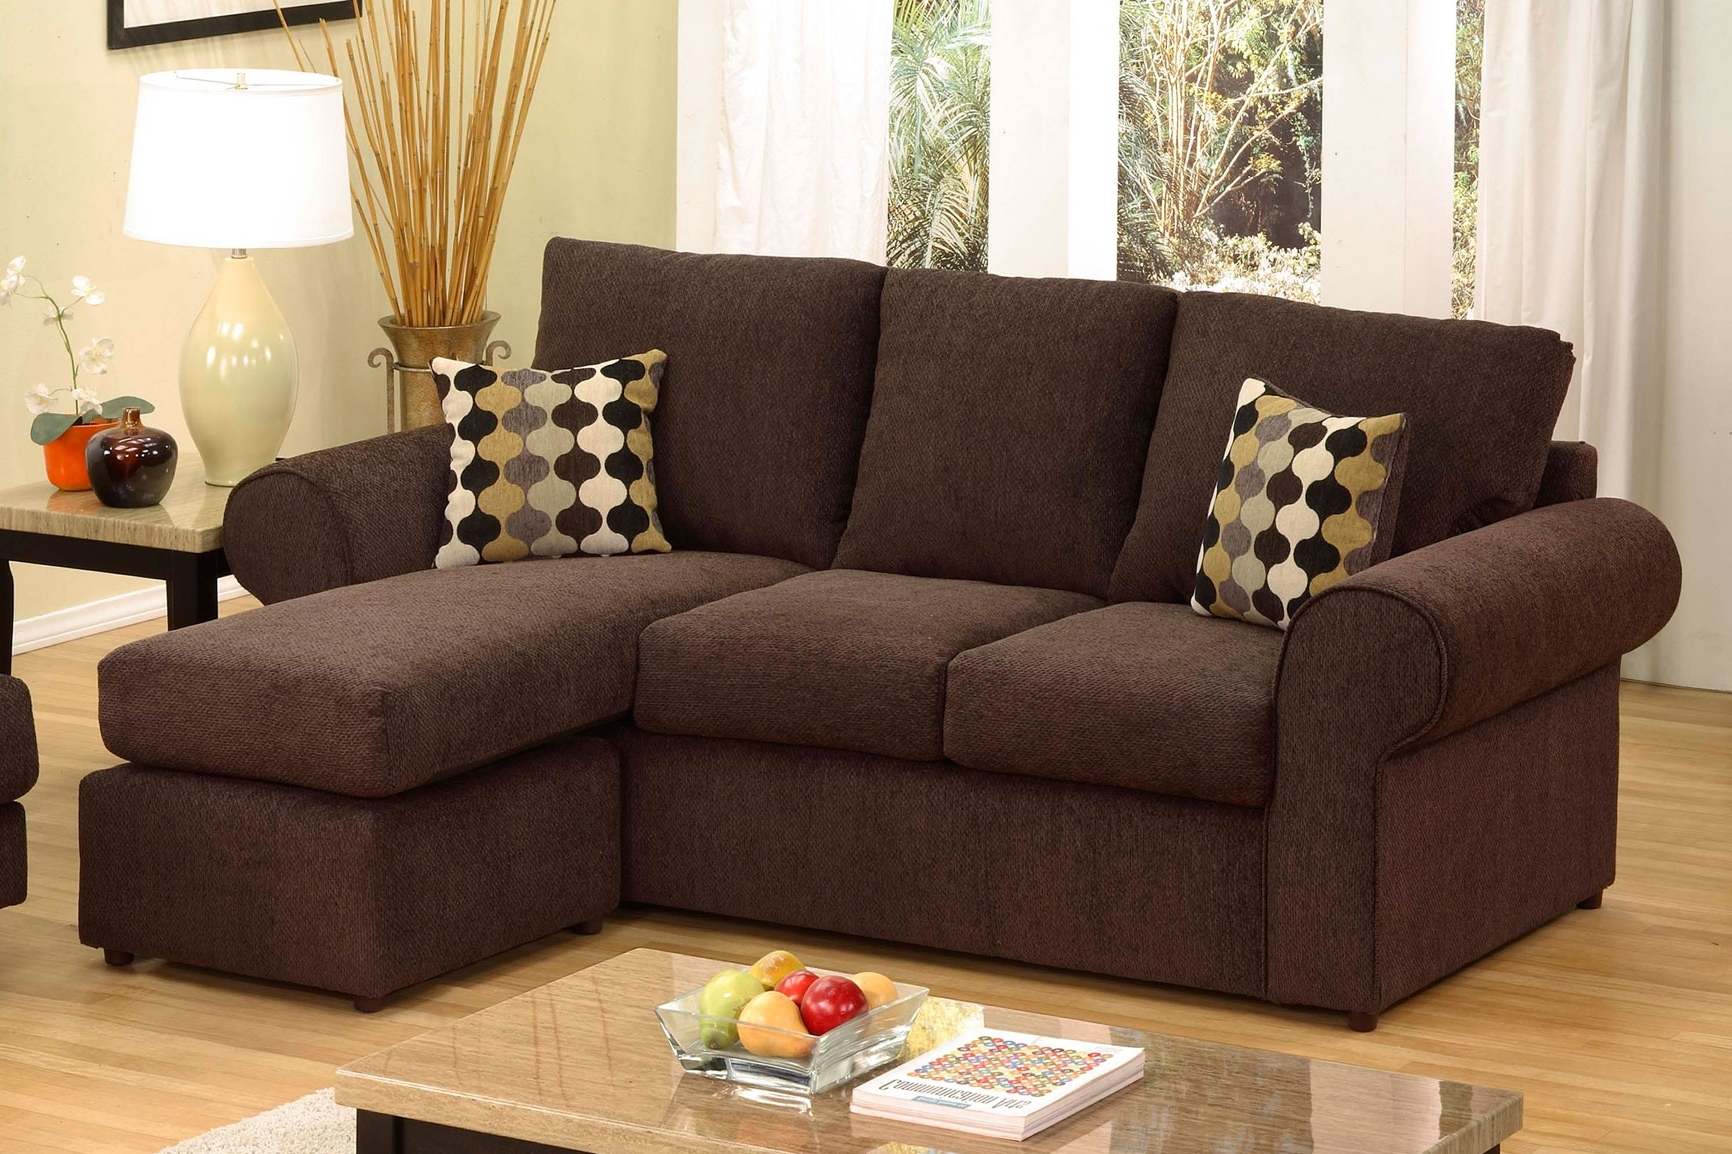 room furniture widely sectionals showing of in sofas gallery living used view tallahassee sectional photos harbor attachment freight